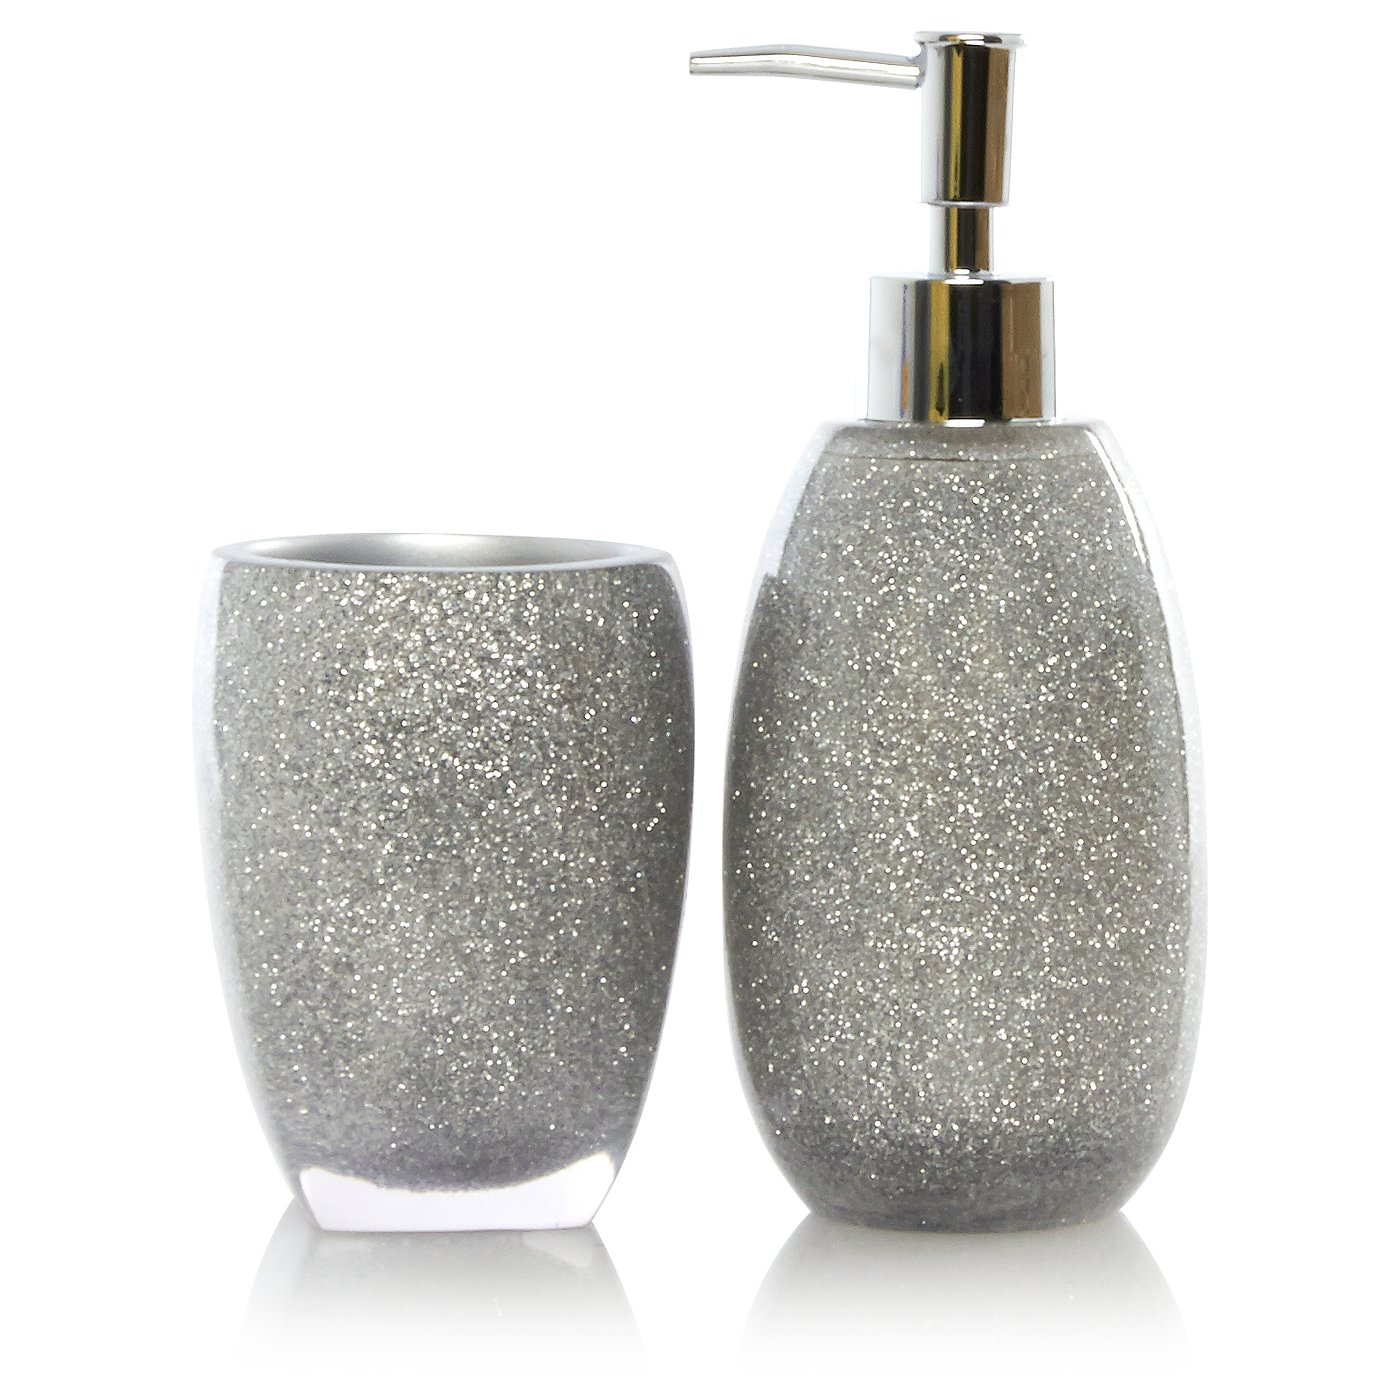 silver sparkle bathroom accessories. Silver Glitter Bath Accessories Range  Loading Zoom Bathroom